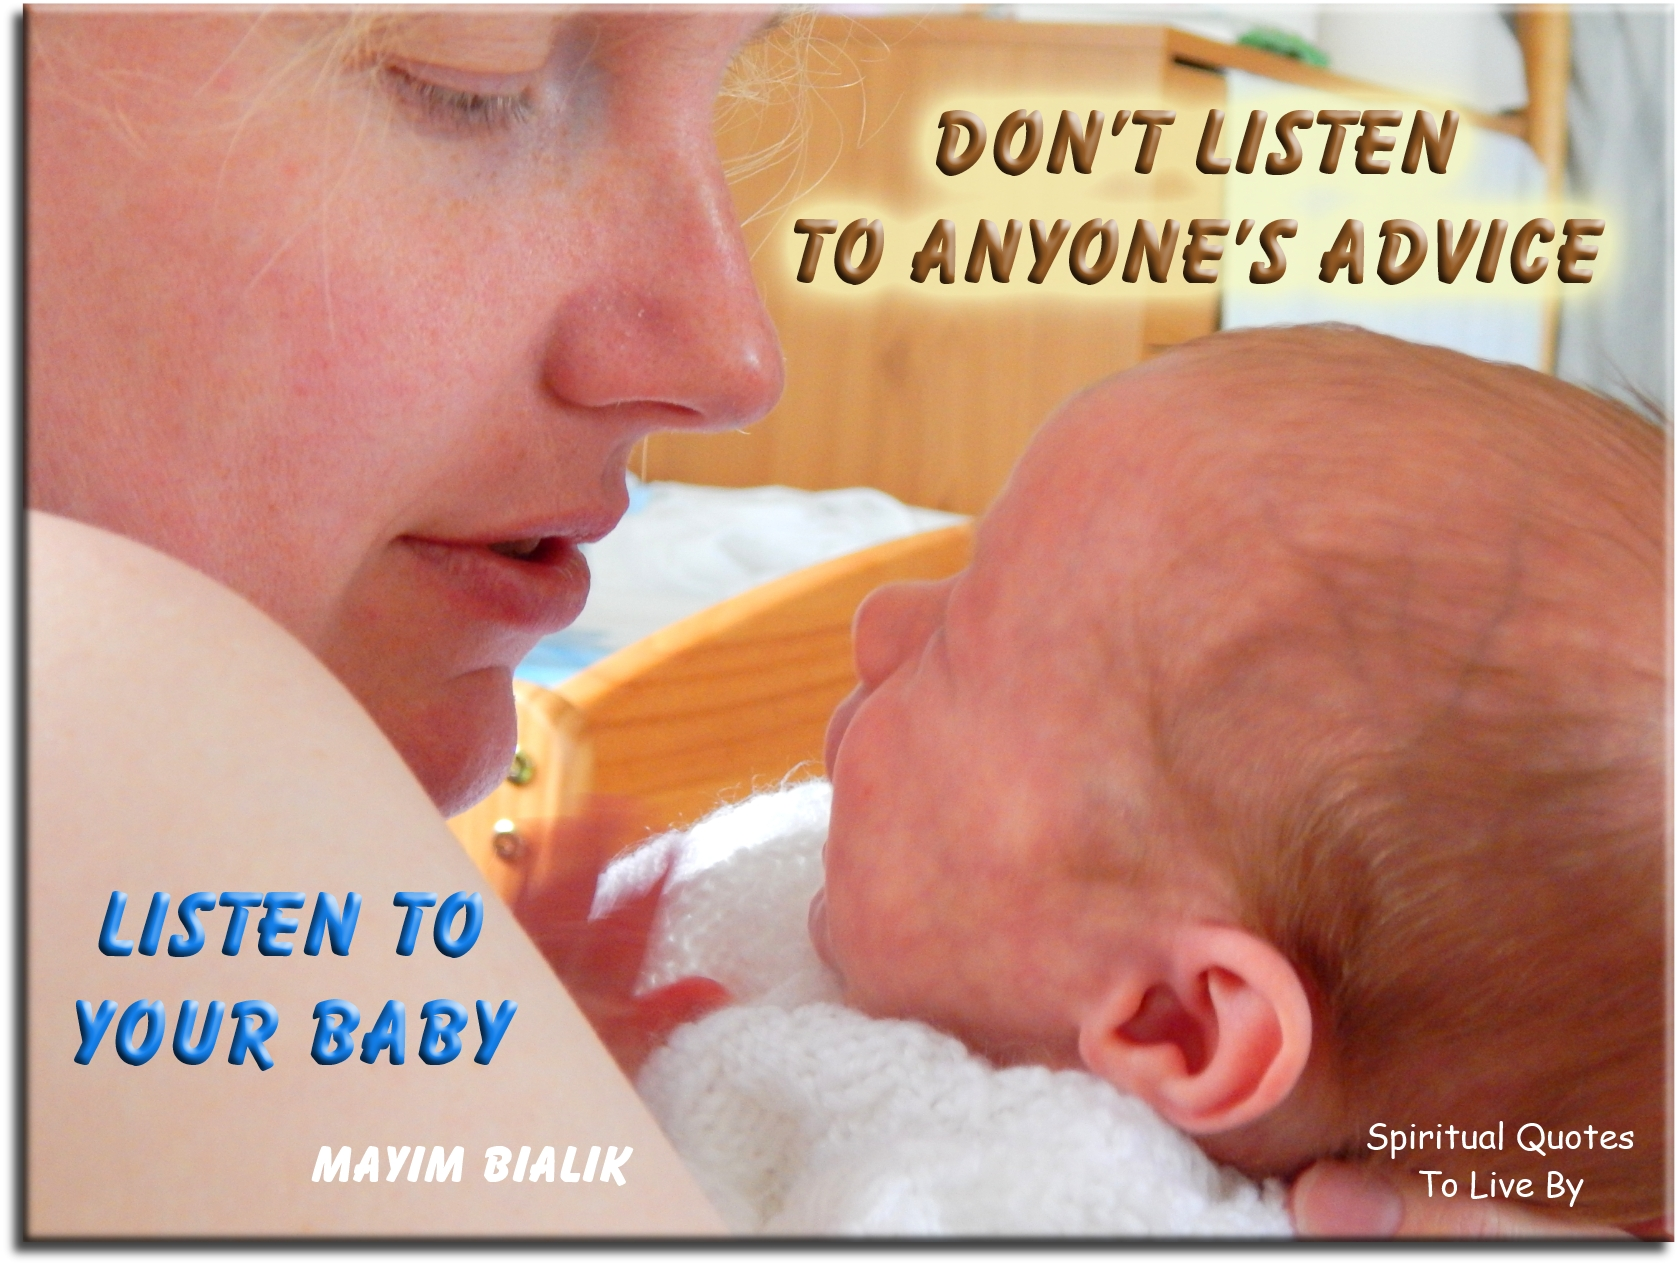 Mayim Bialik quote: Don't listen to anyone's advice. Listen to your baby. - Spiritual Quotes To Live By